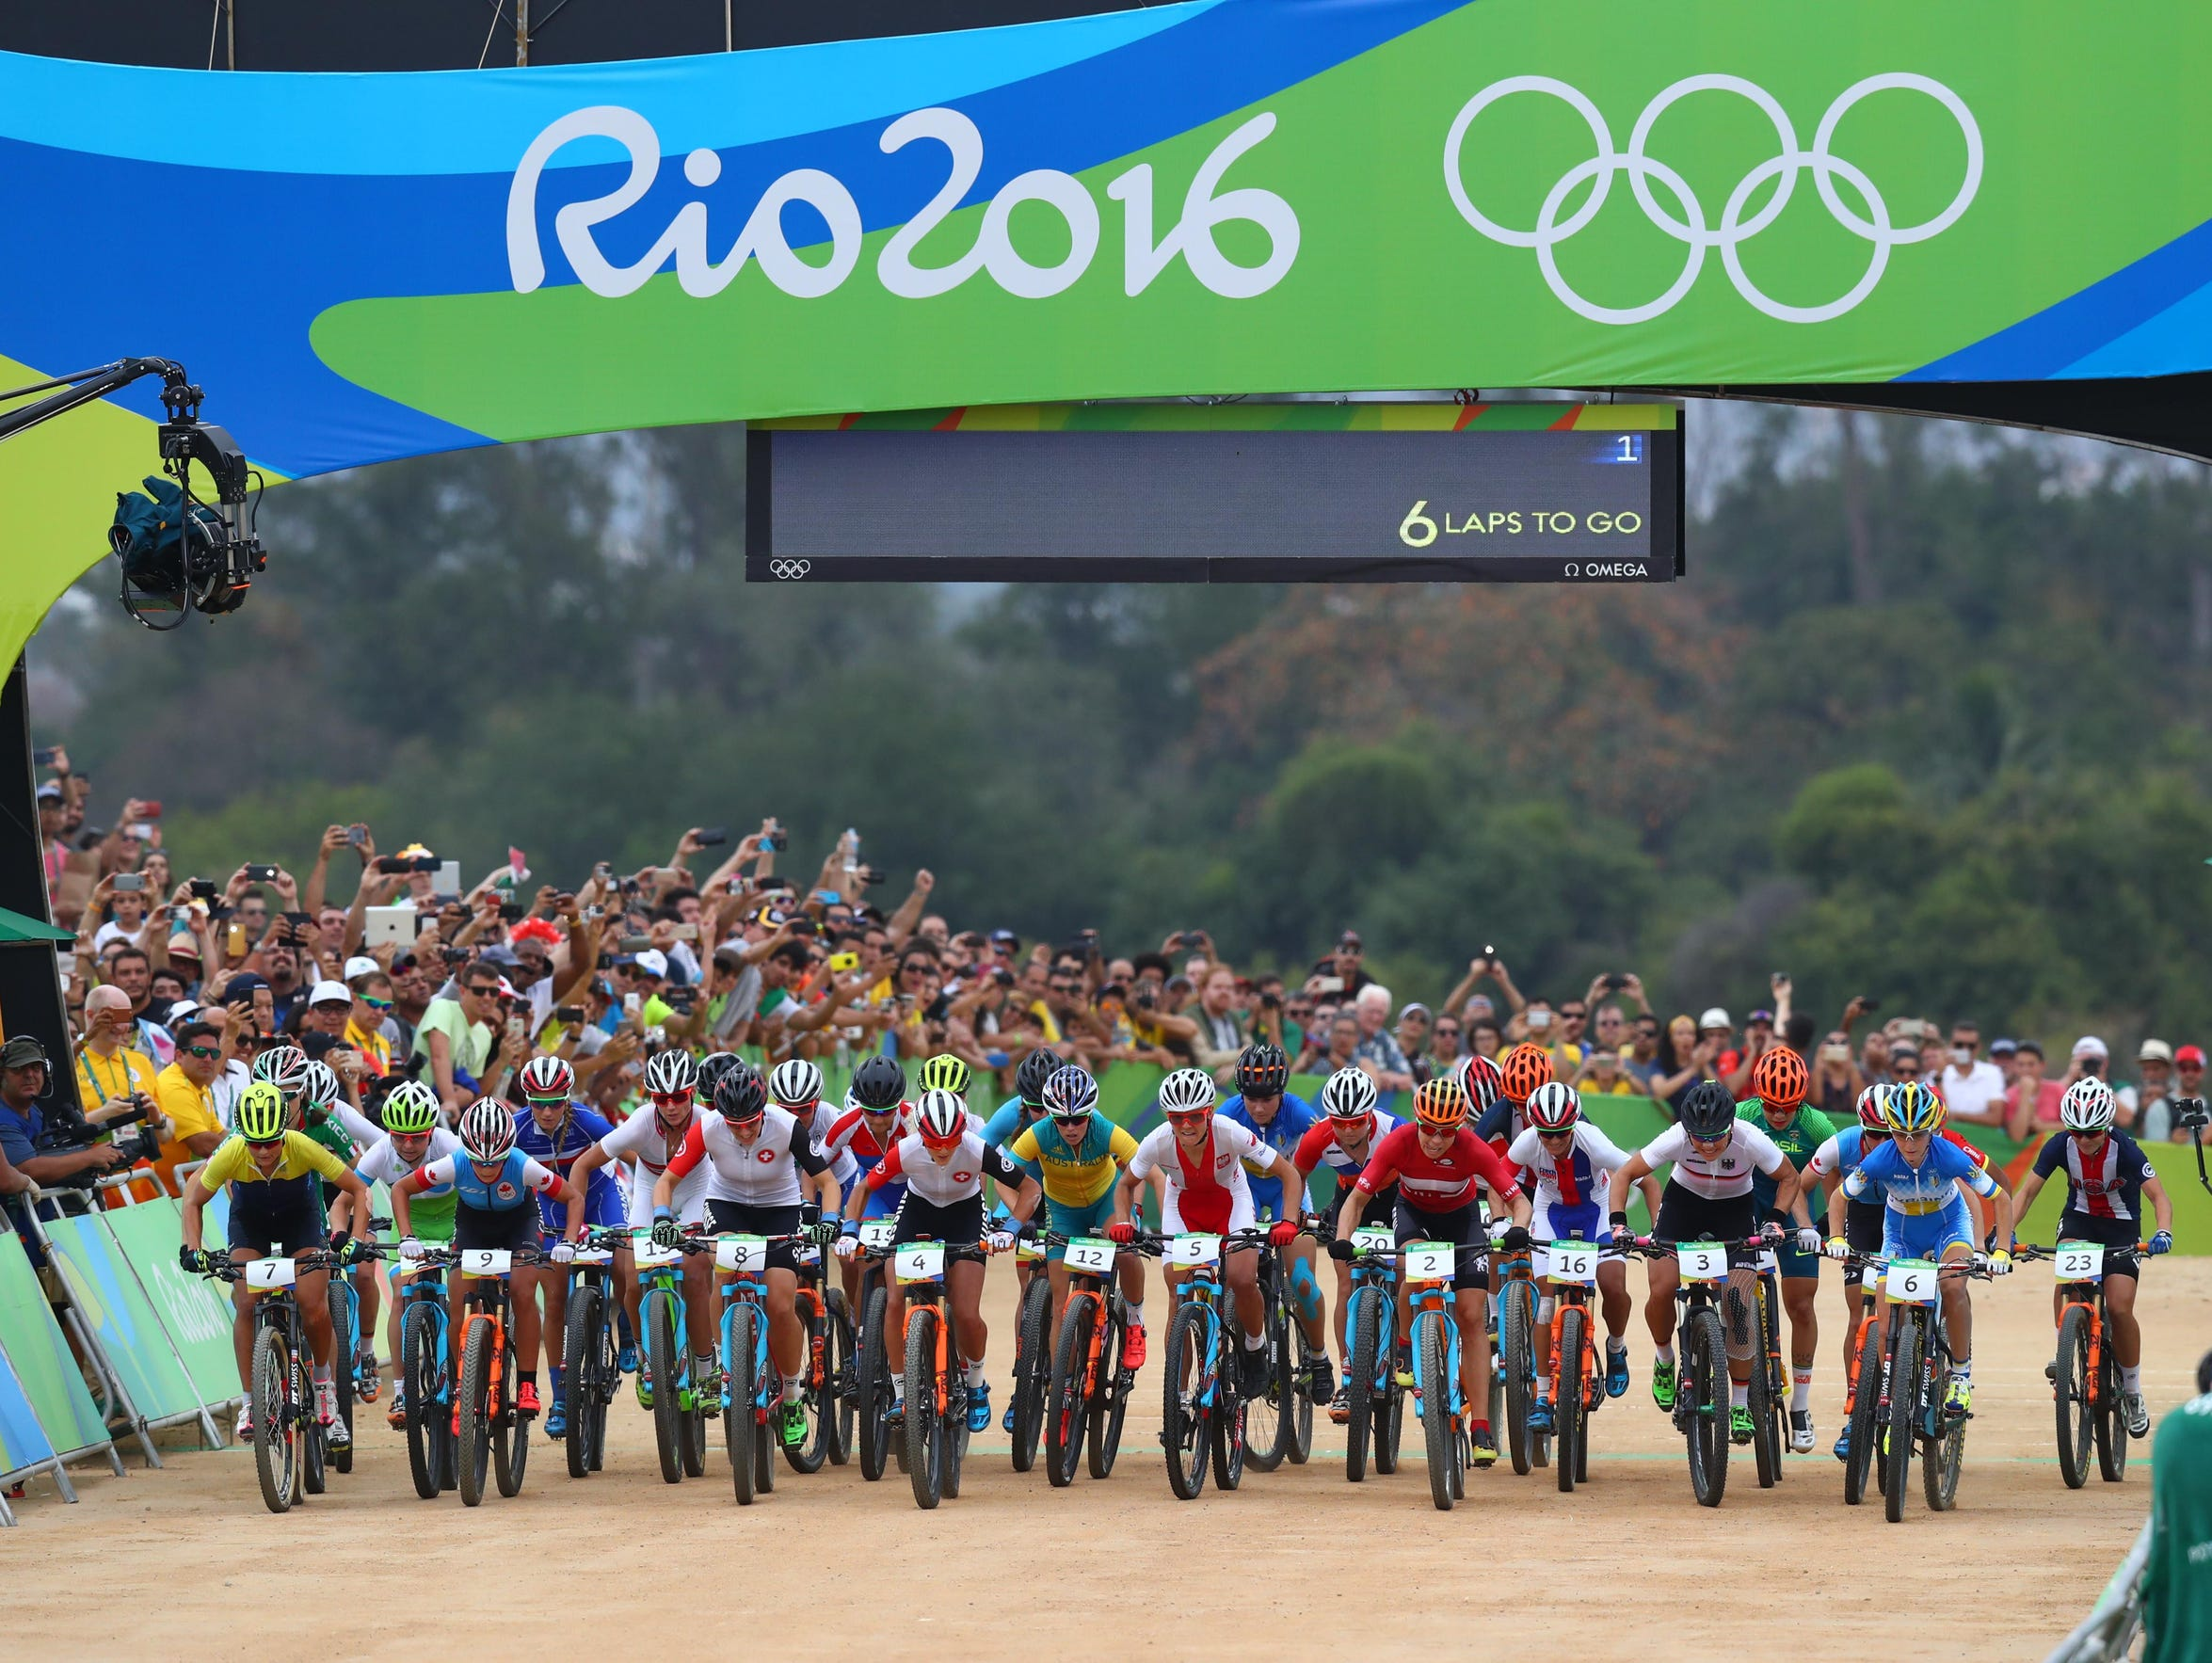 Women cyclists compete in the 2016 Olympic Games in Rio de Janeiro. Many governing bodies, such as USA Cycling, have adopted the International Olympic Committee's transgender guidelines.